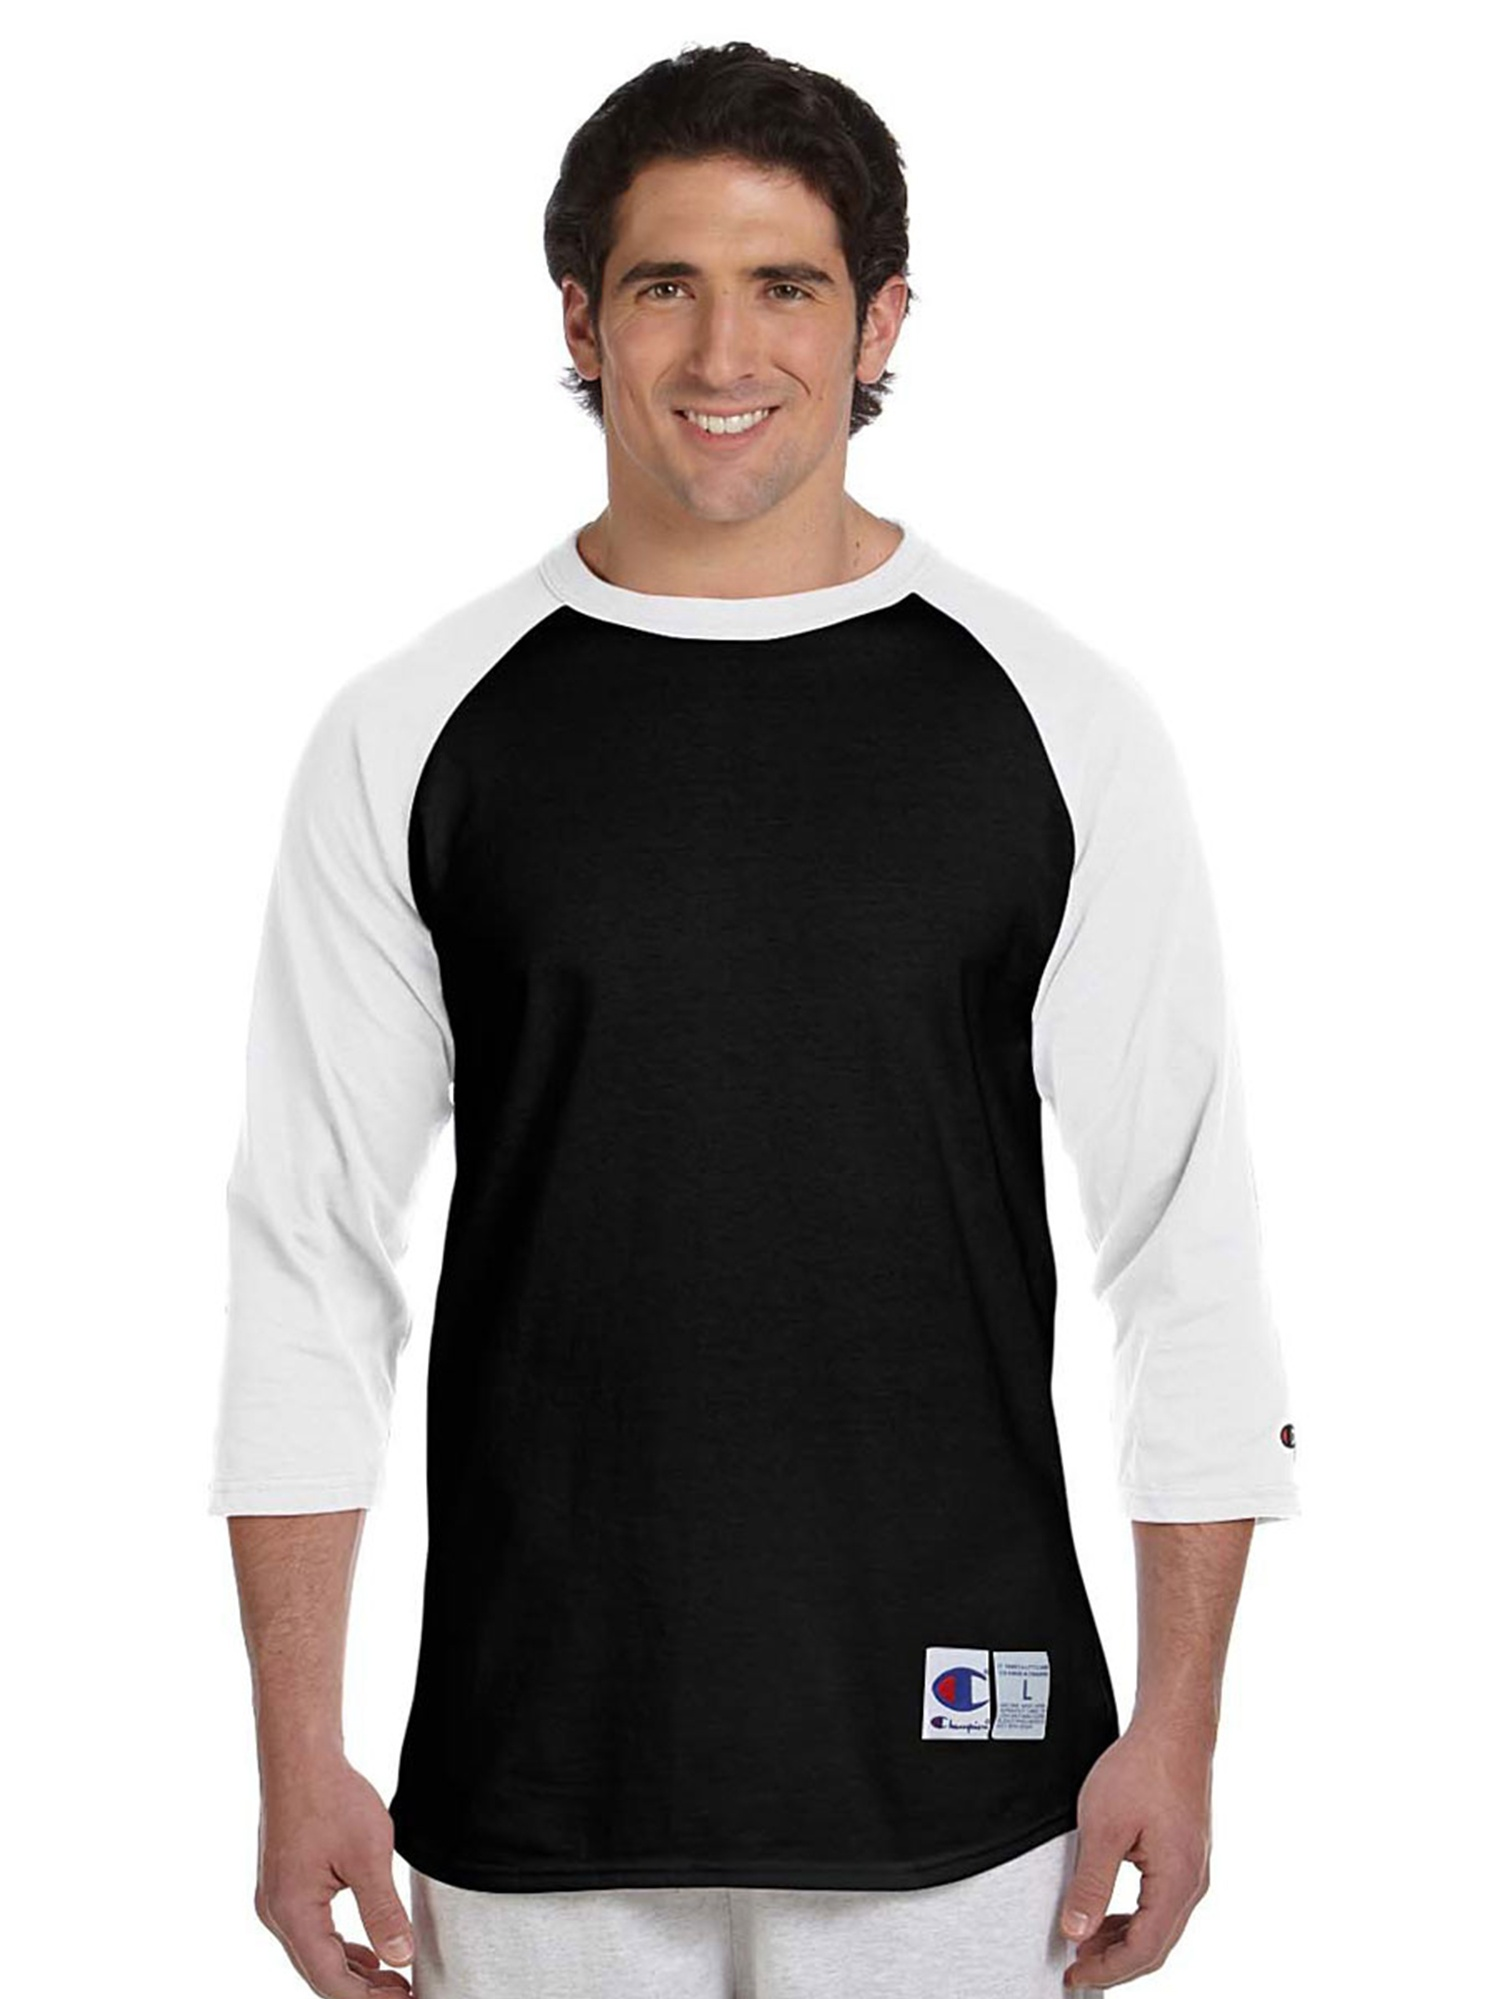 a57faf3bcc Baseball Tee Shirts Walmart – EDGE Engineering and Consulting Limited